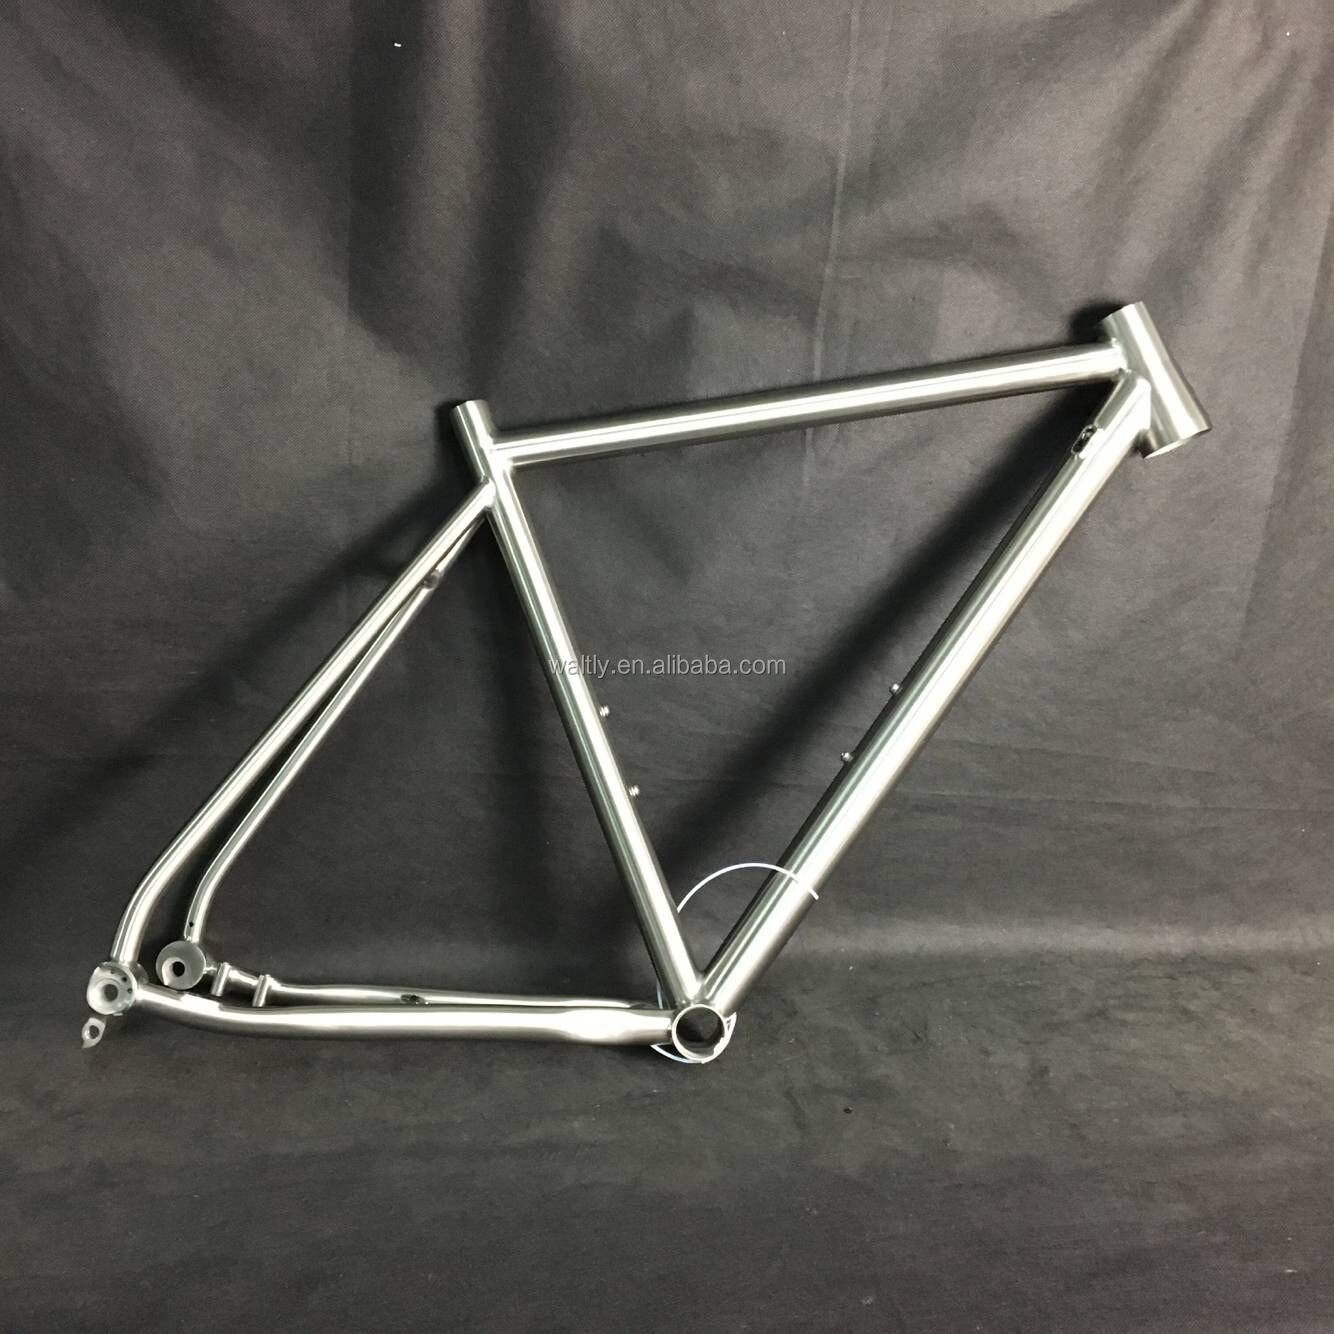 700c titanium bike frame disc road for internal cable routing